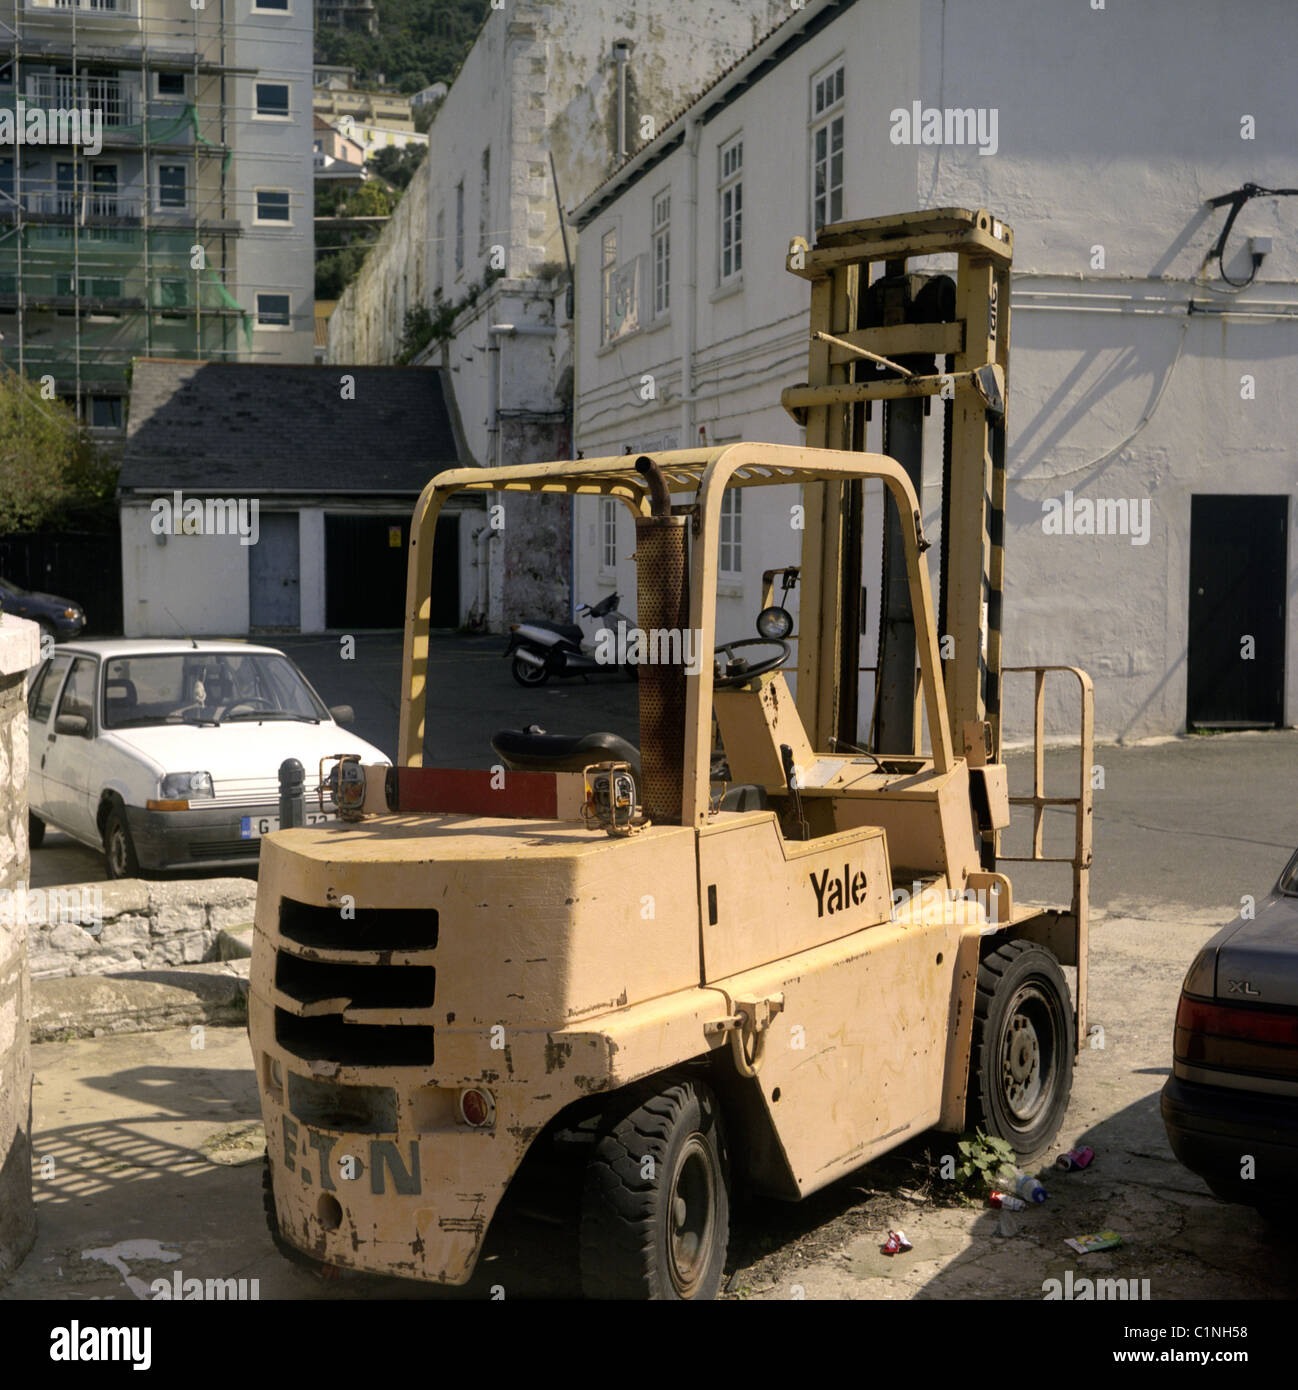 Yale Forklift Stock Photos & Yale Forklift Stock Images - Alamy